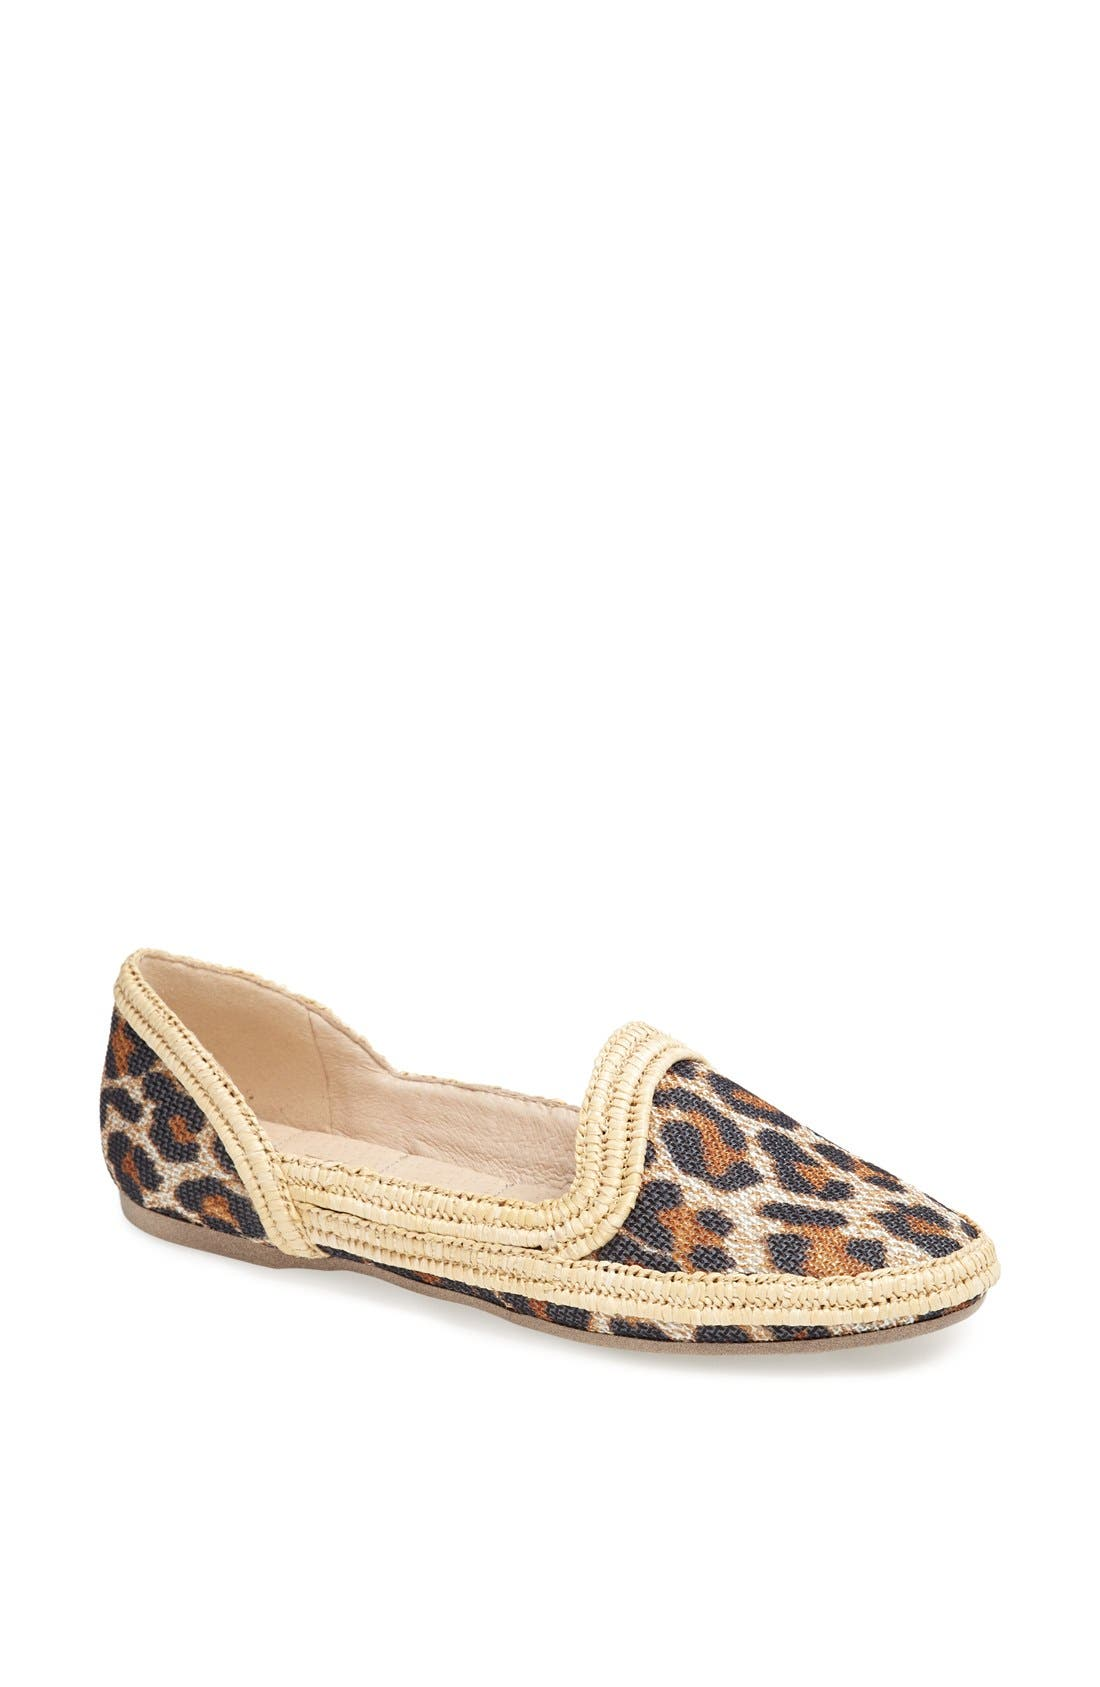 Alternate Image 1 Selected - Eileen Fisher 'Motto' Flat